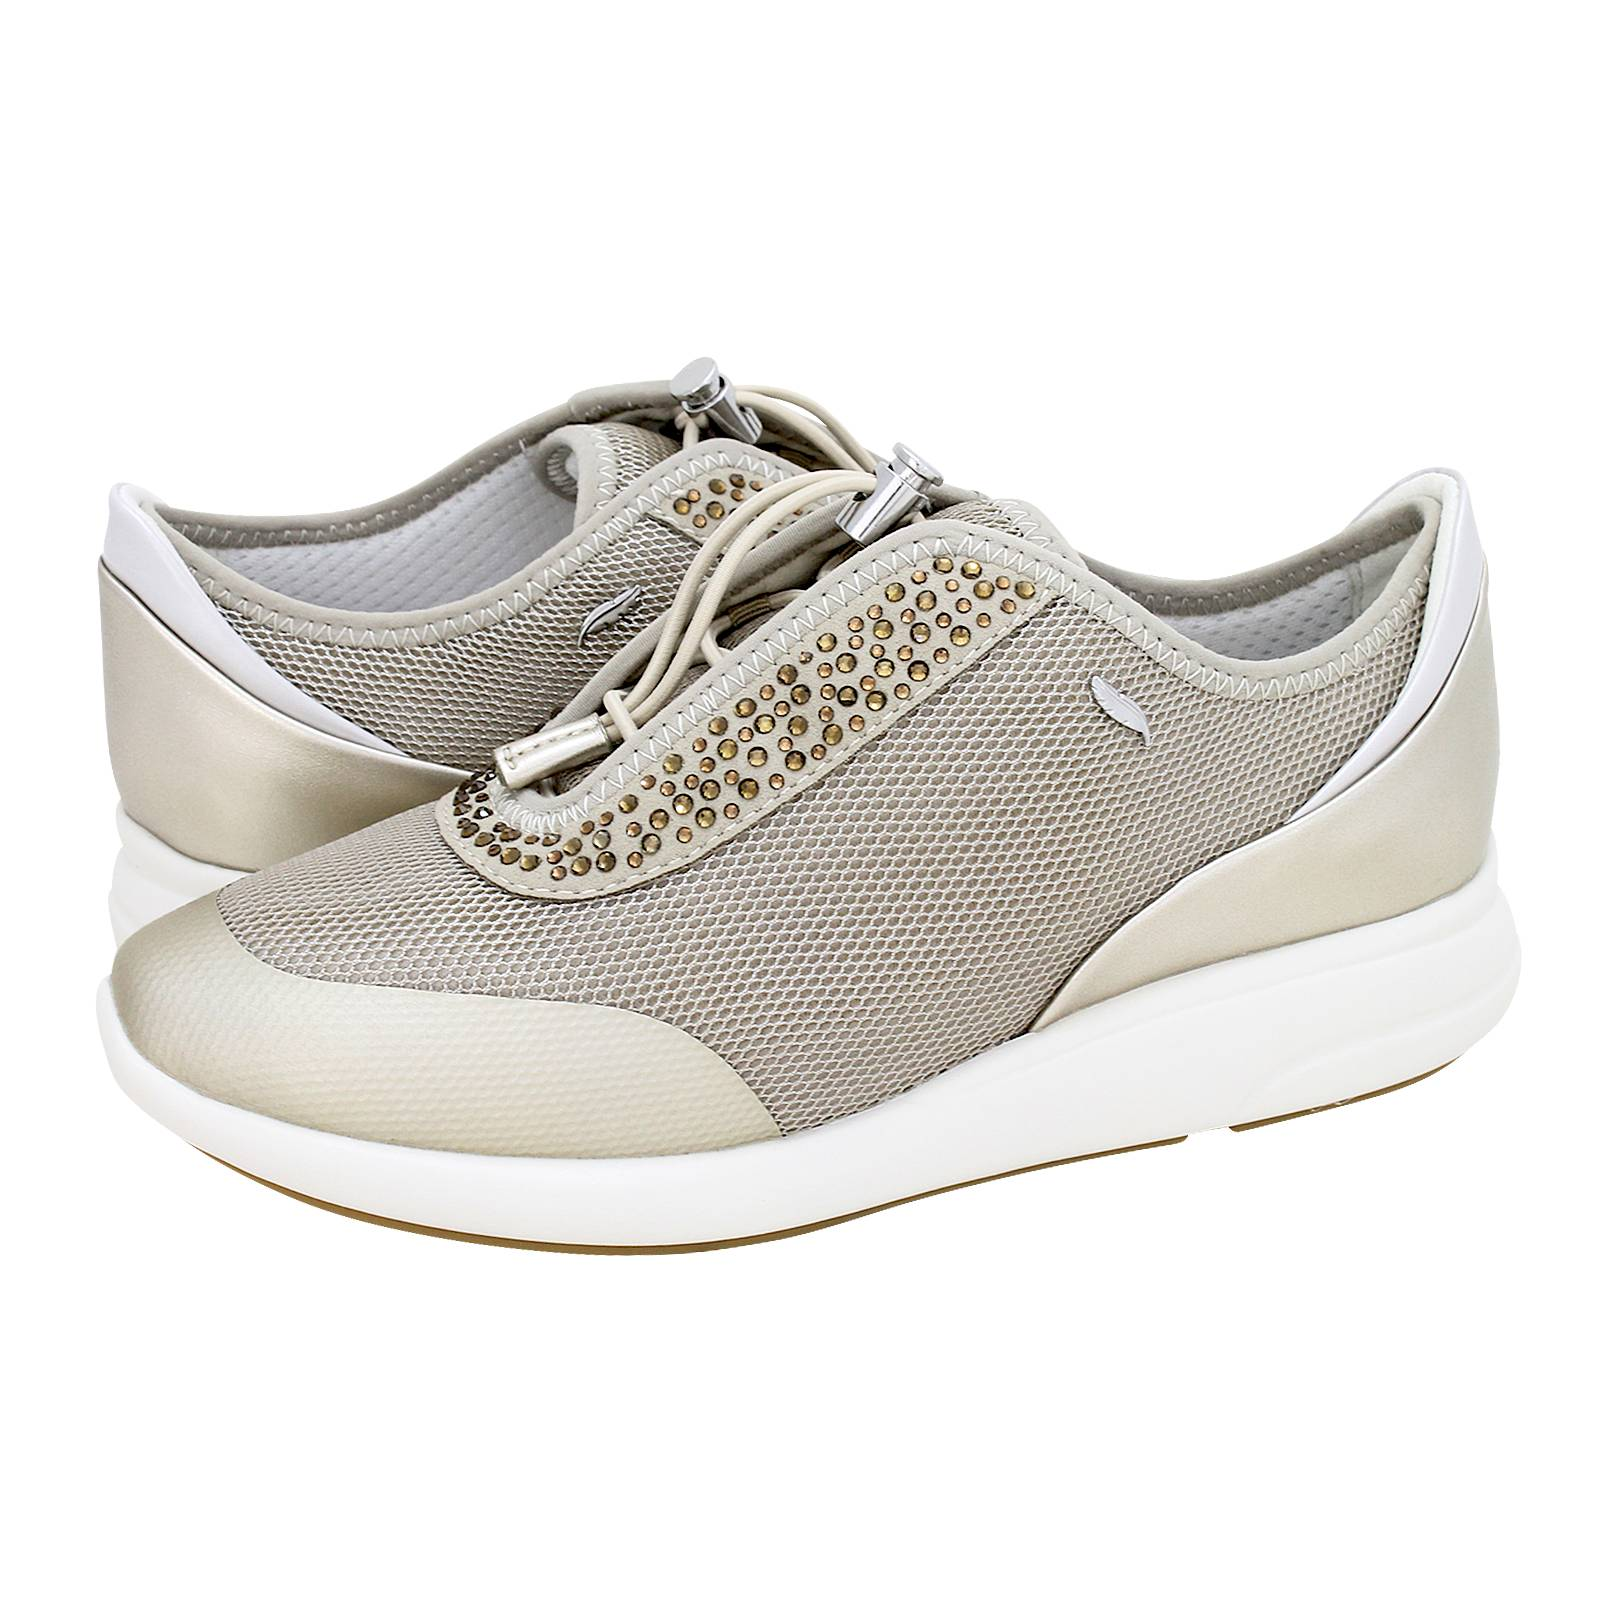 D Ophira E - Geox Women s casual shoes made of fabric and synthetic ... f59b3bba5c6